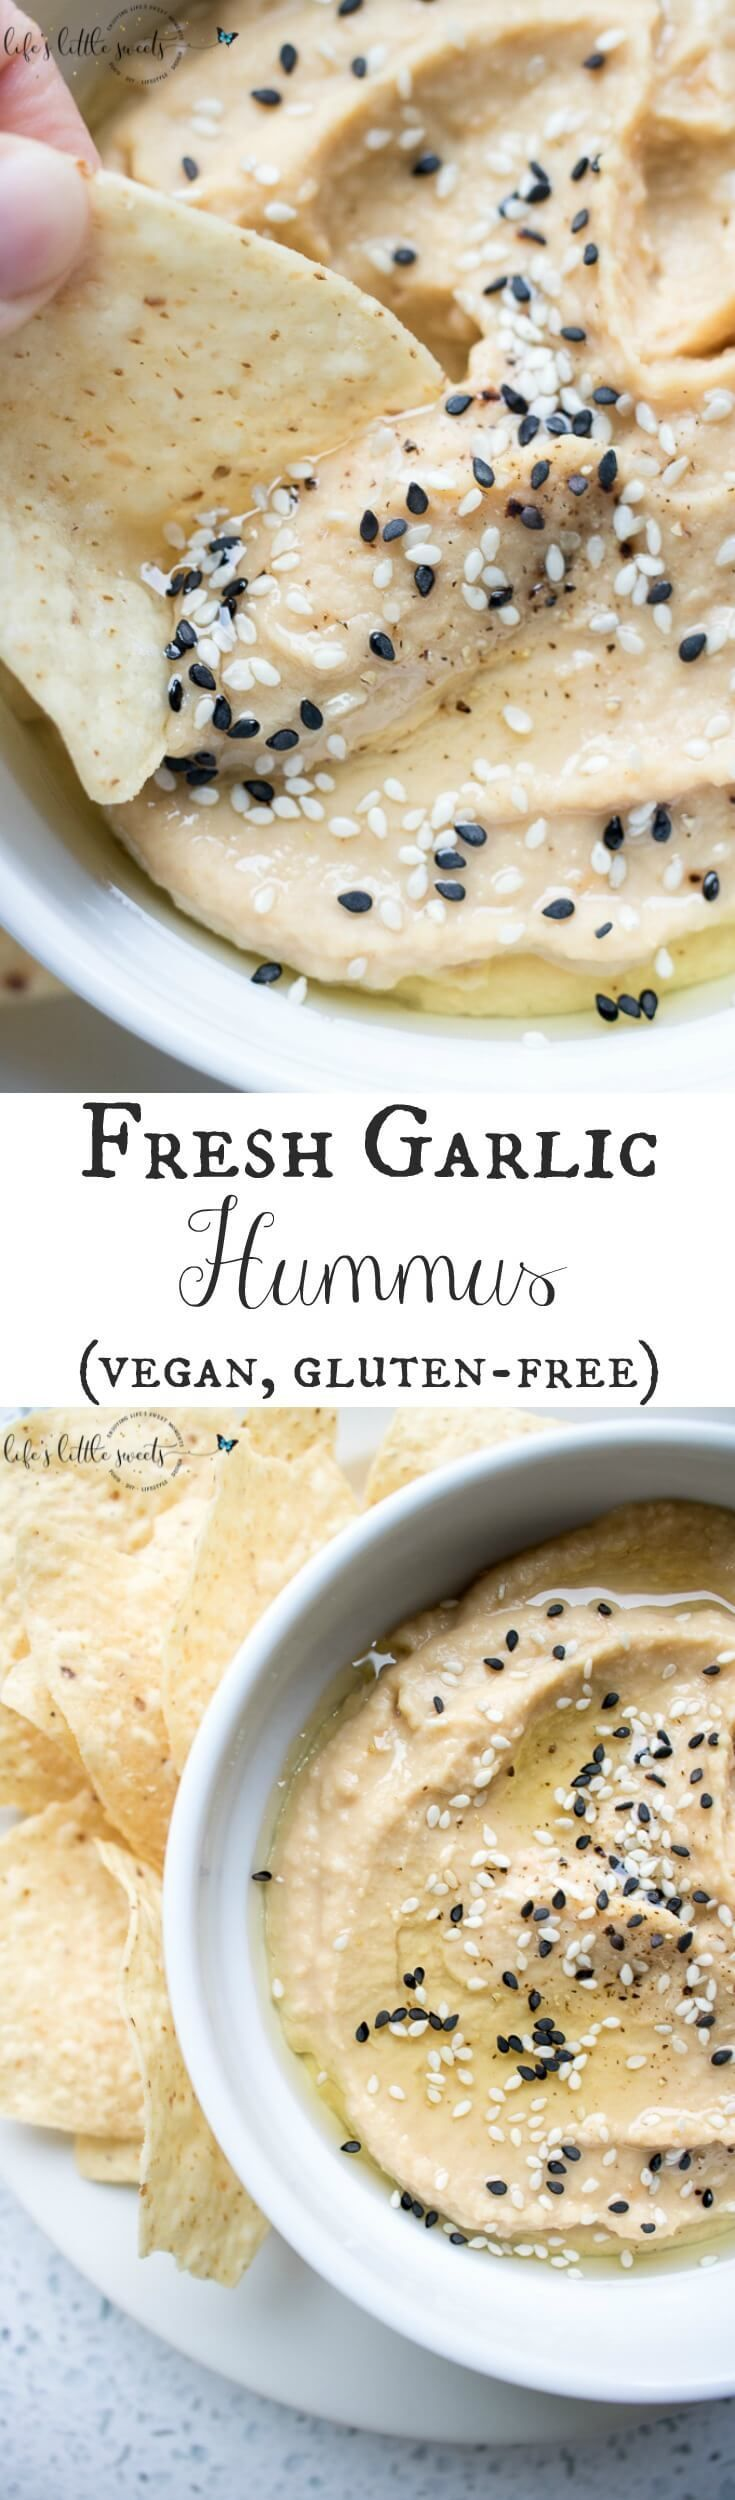 This Fresh Garlic Hummus takes minutes to make with simple ingredients like chickpeas, fresh garlic, tahini, olive oil, salt and pepper - savory, fresh and delicious, serve it with tortilla chips, tortillas, bread, or in sandwiches!